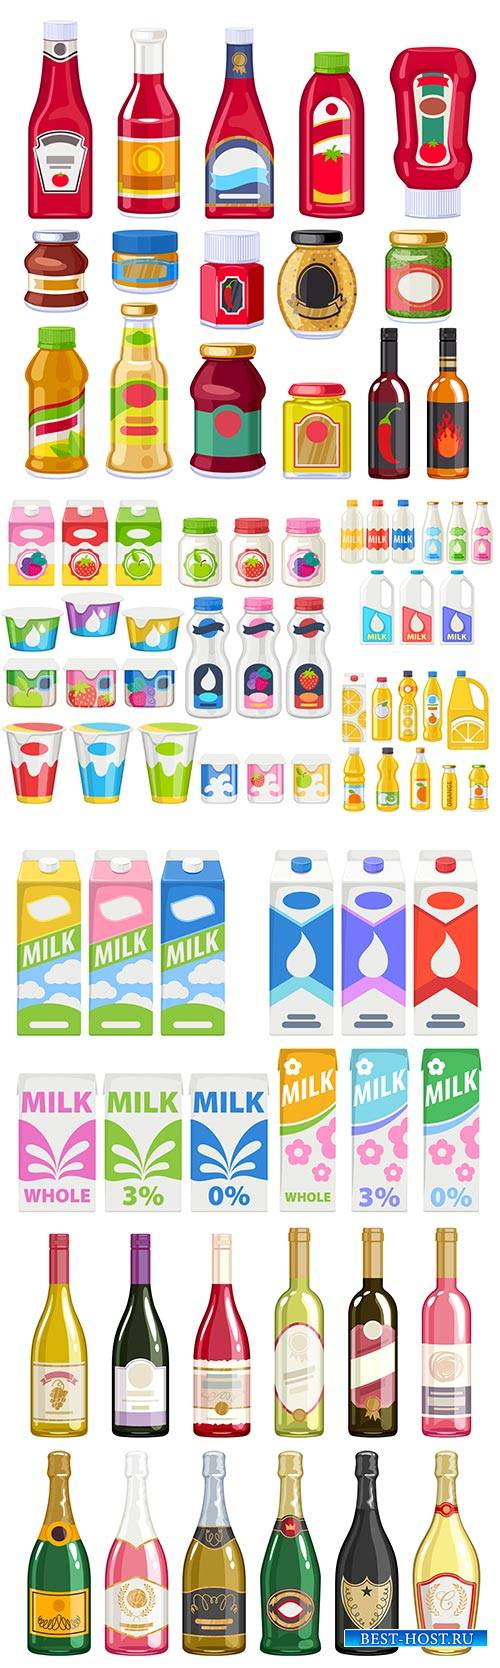 Bottles vector set products packaging